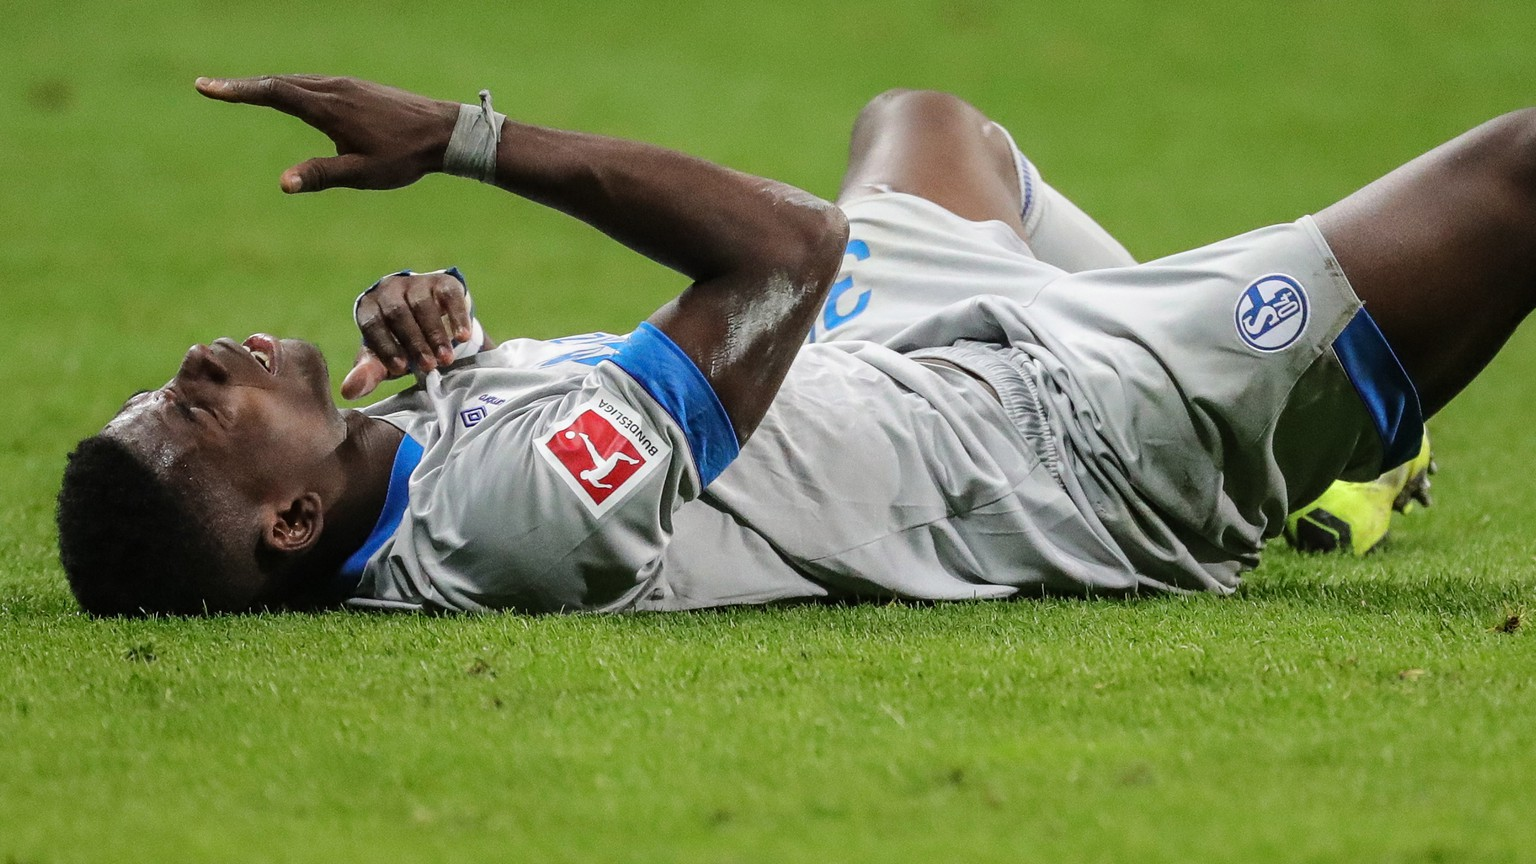 epa07159474 Schalke's Breel Embolo reacts during the German Bundesliga soccer match between Eintracht Frankfurt and FC Schalke 04 in Frankfurt Main, Germany, 11 November 2018.  EPA/ARMANDO BABANI CONDITIONS - ATTENTION: The DFL regulations prohibit any use of photographs as image sequences and/or quasi-video.